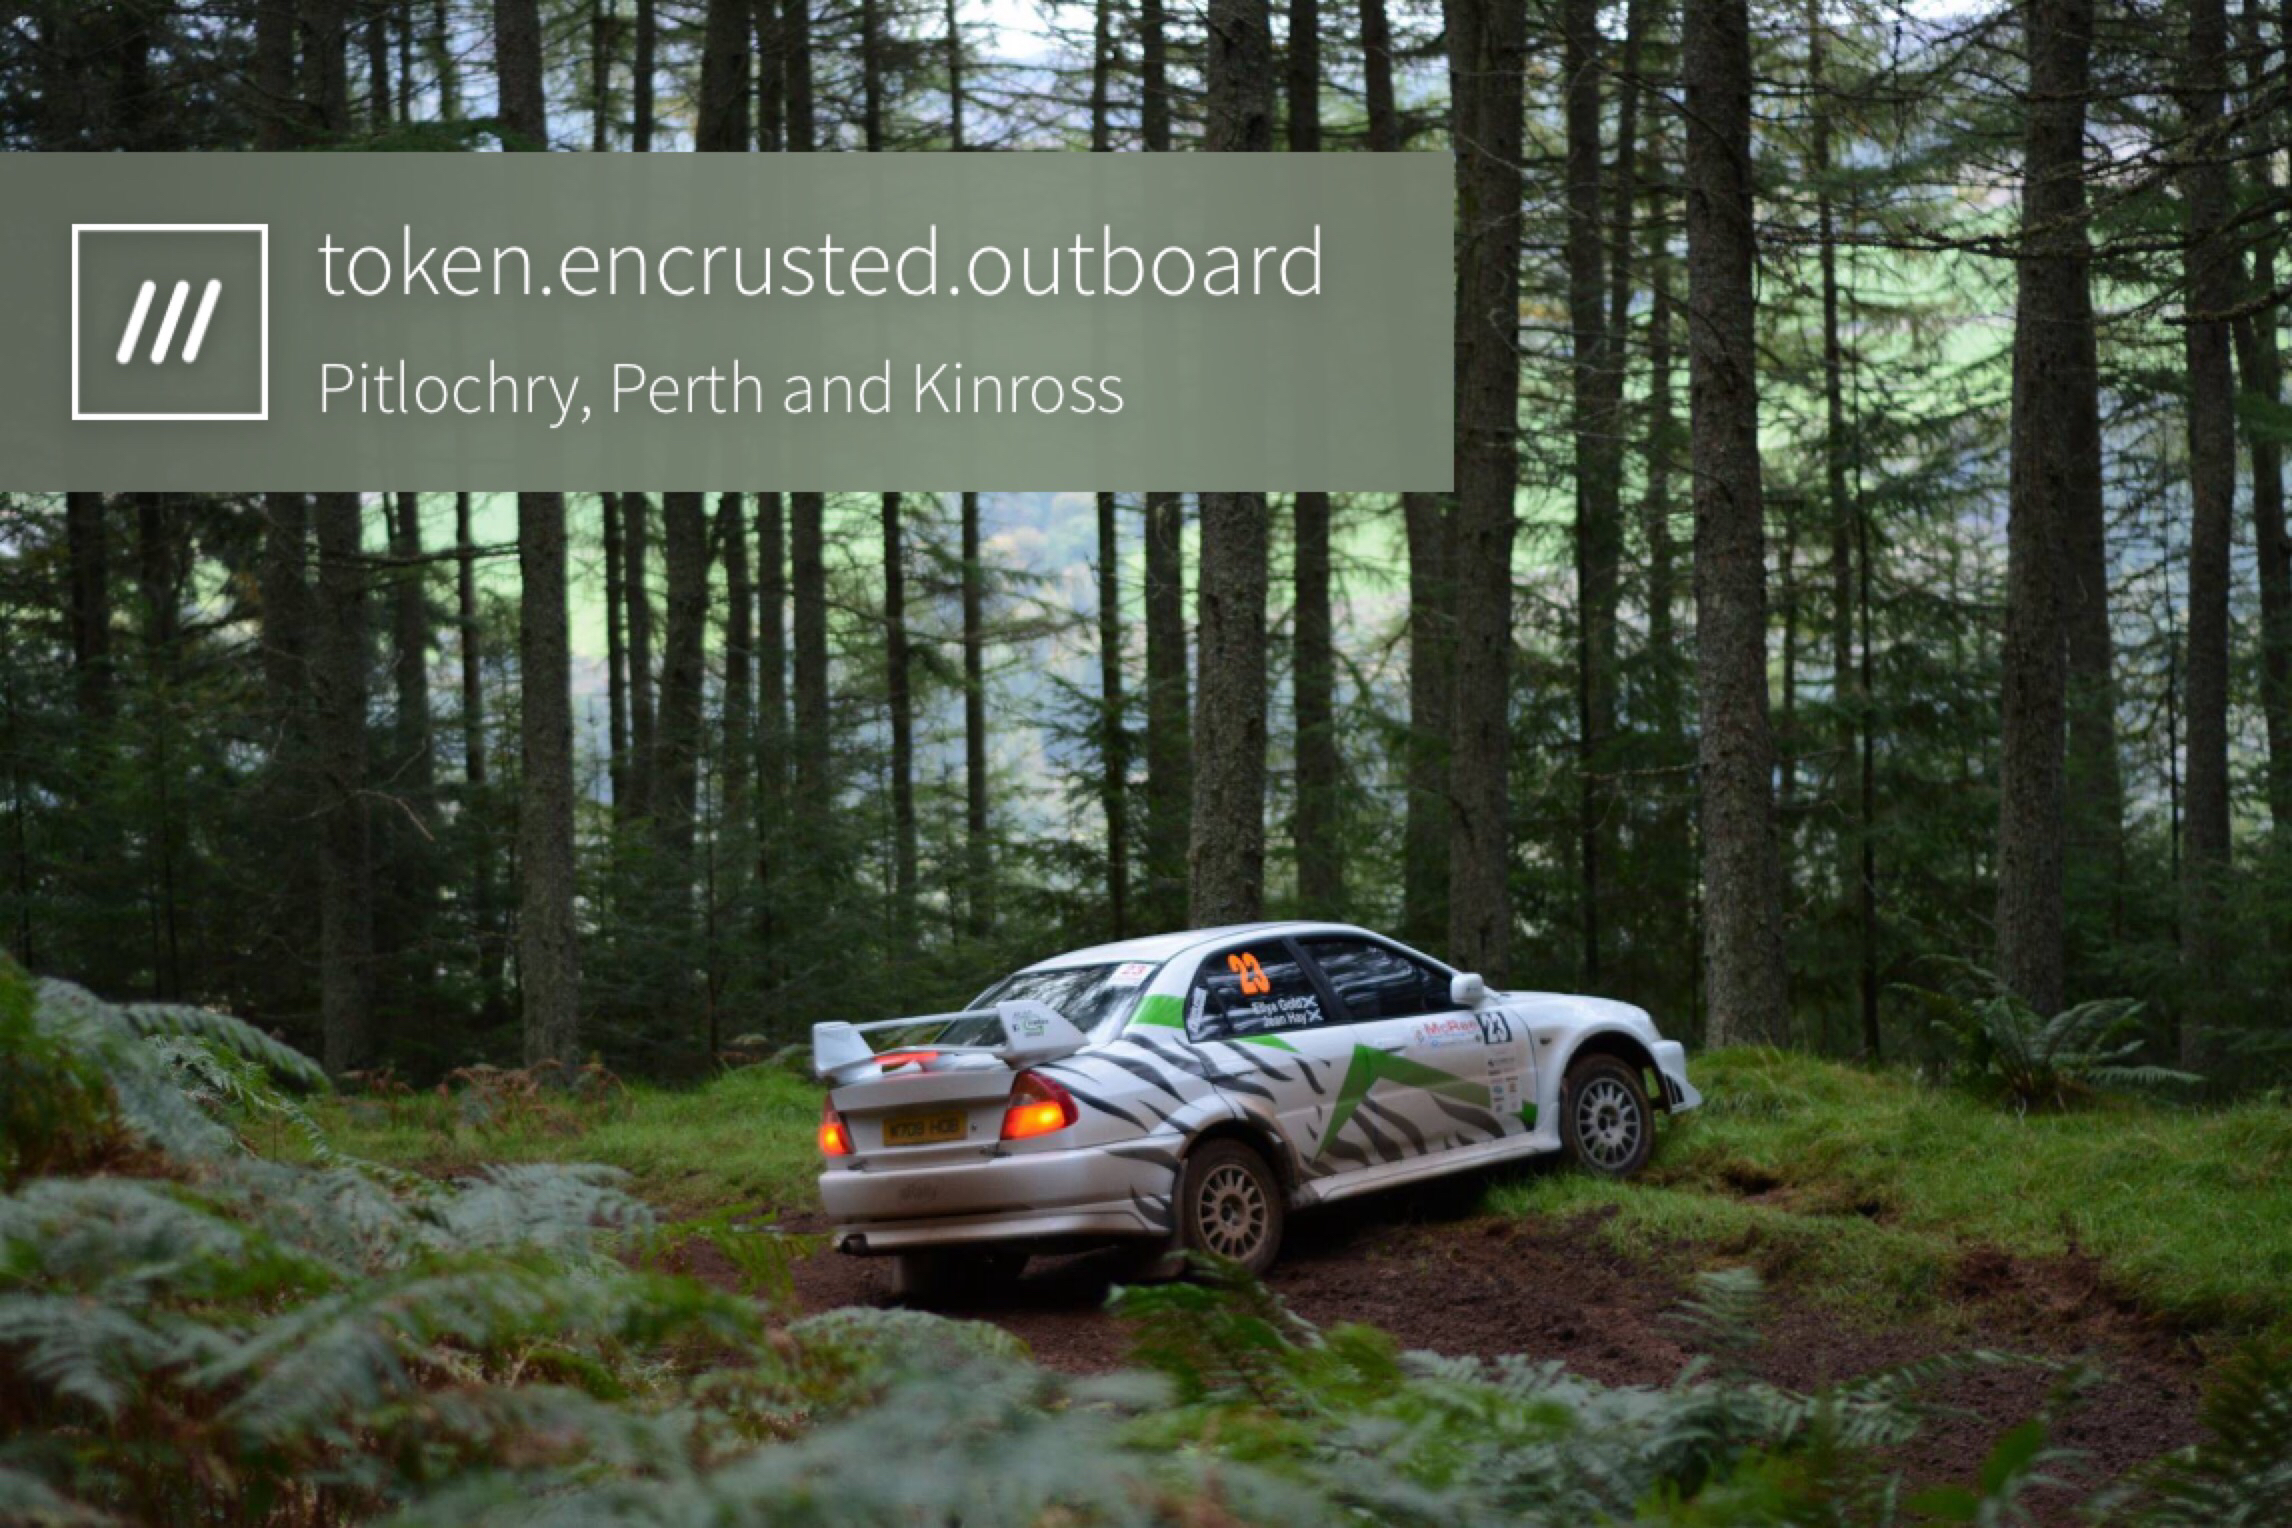 race car off road in woodland area at 3 word address token.encrusted.outboard